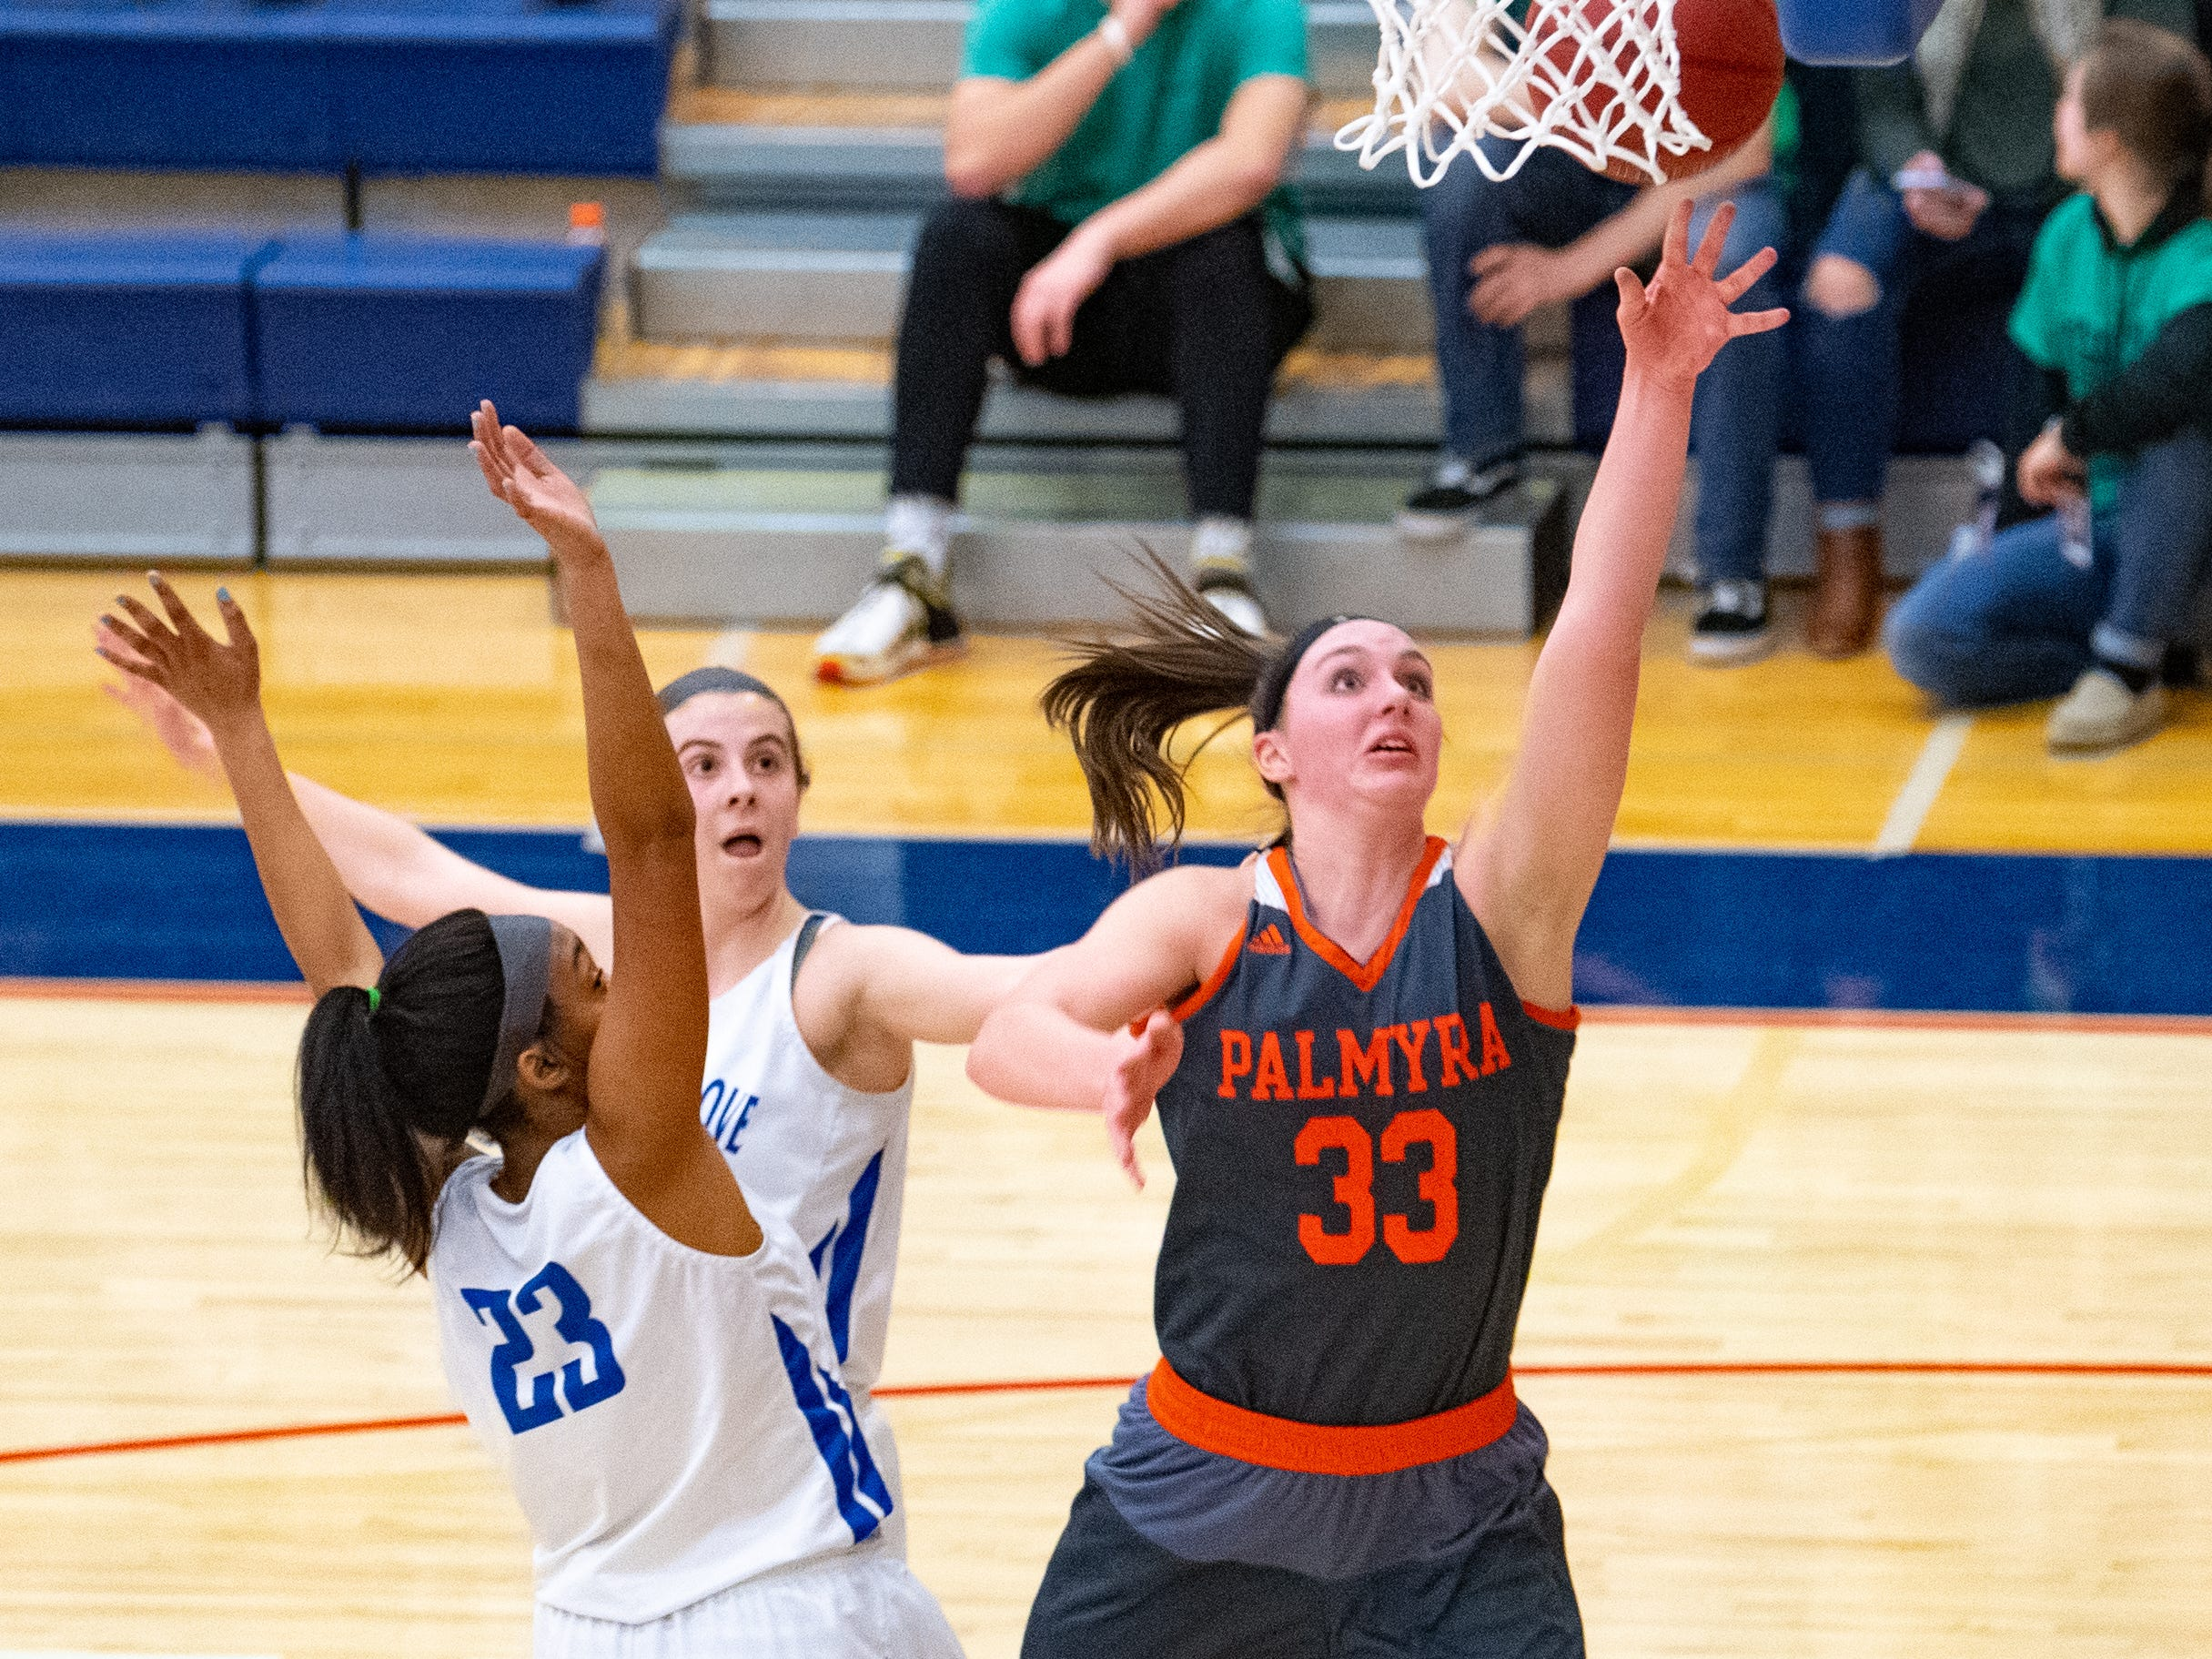 Olivia Richardson (33) scores during the District 3 Class 5A girls' basketball quarterfinal between Spring Grove and Palmyra, Friday, February 22, 2019 at Spring Grove Area High School. The Cougars defeated the Rockets 43 to 41.